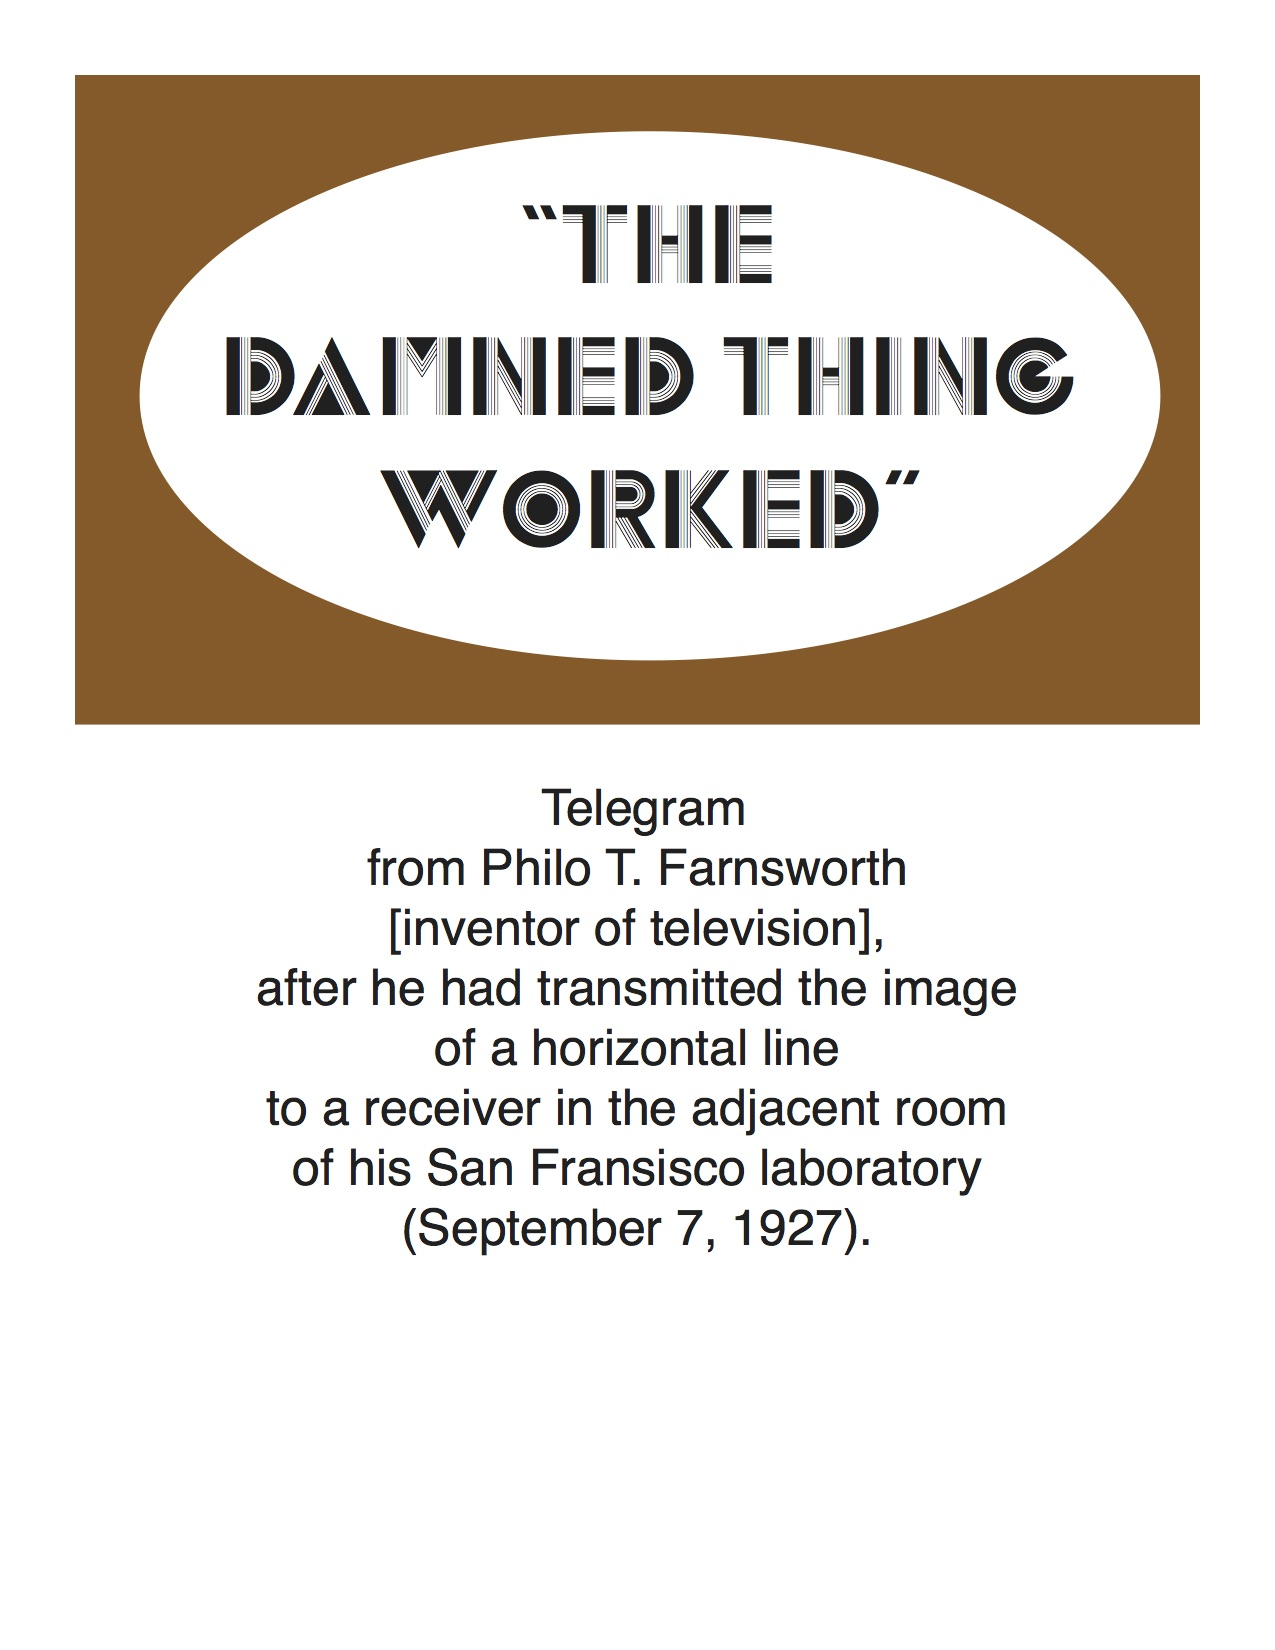 Philo Farnsworth telegram